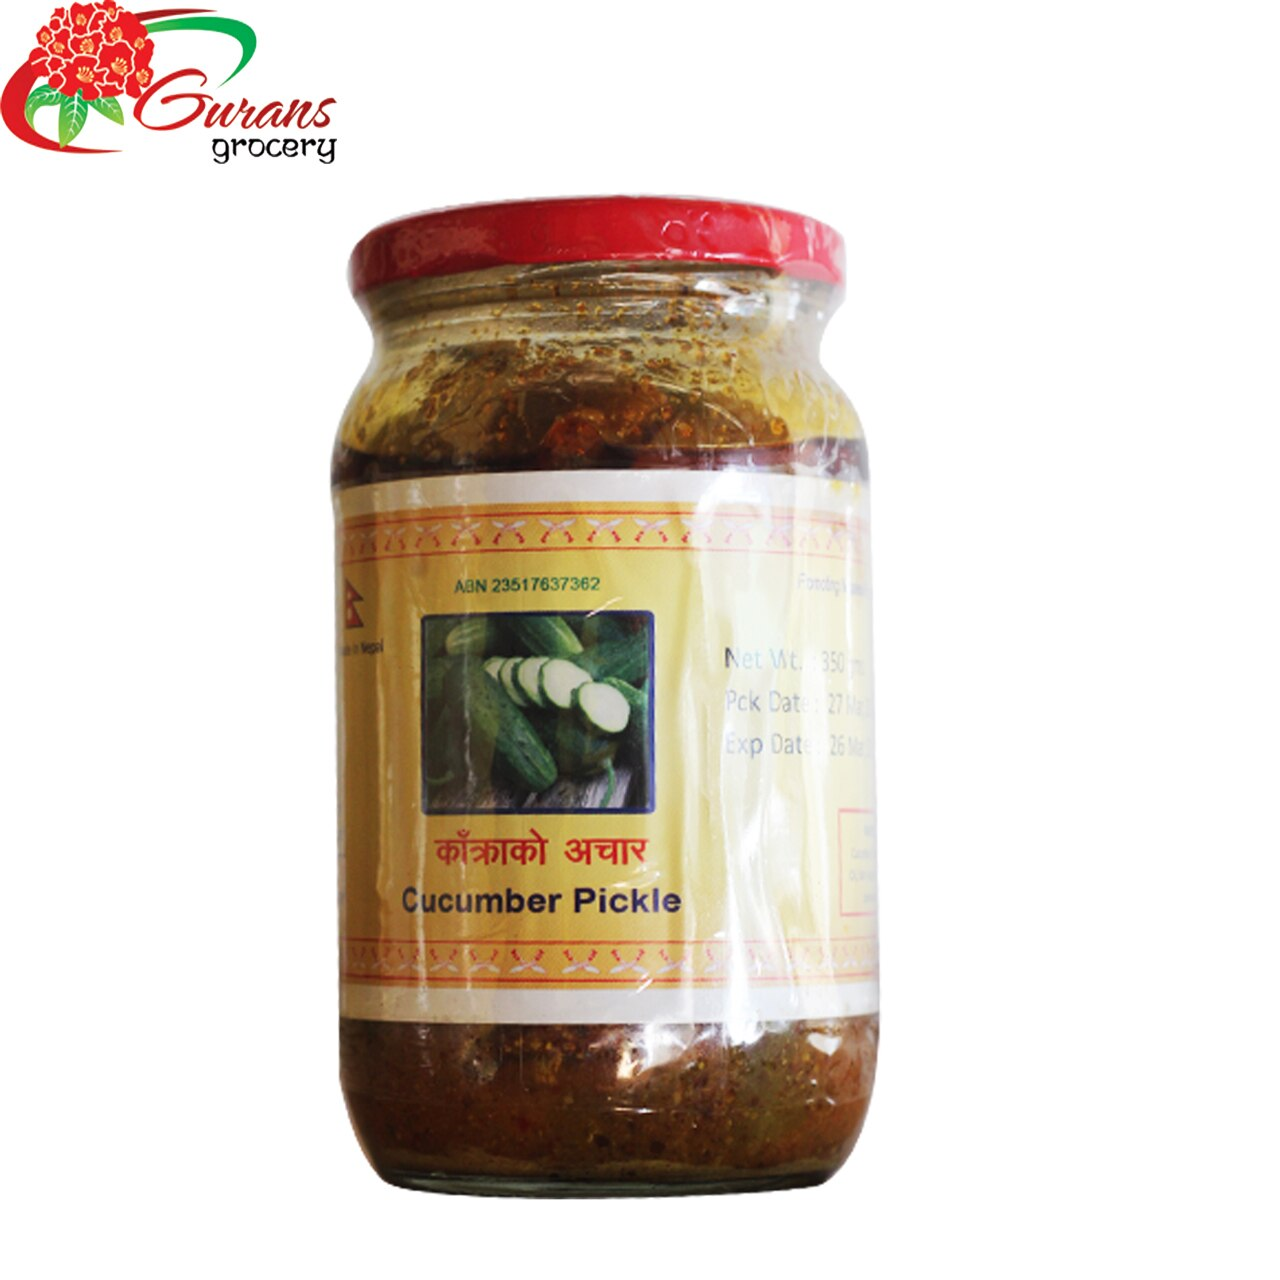 Cucumber pickle 350g